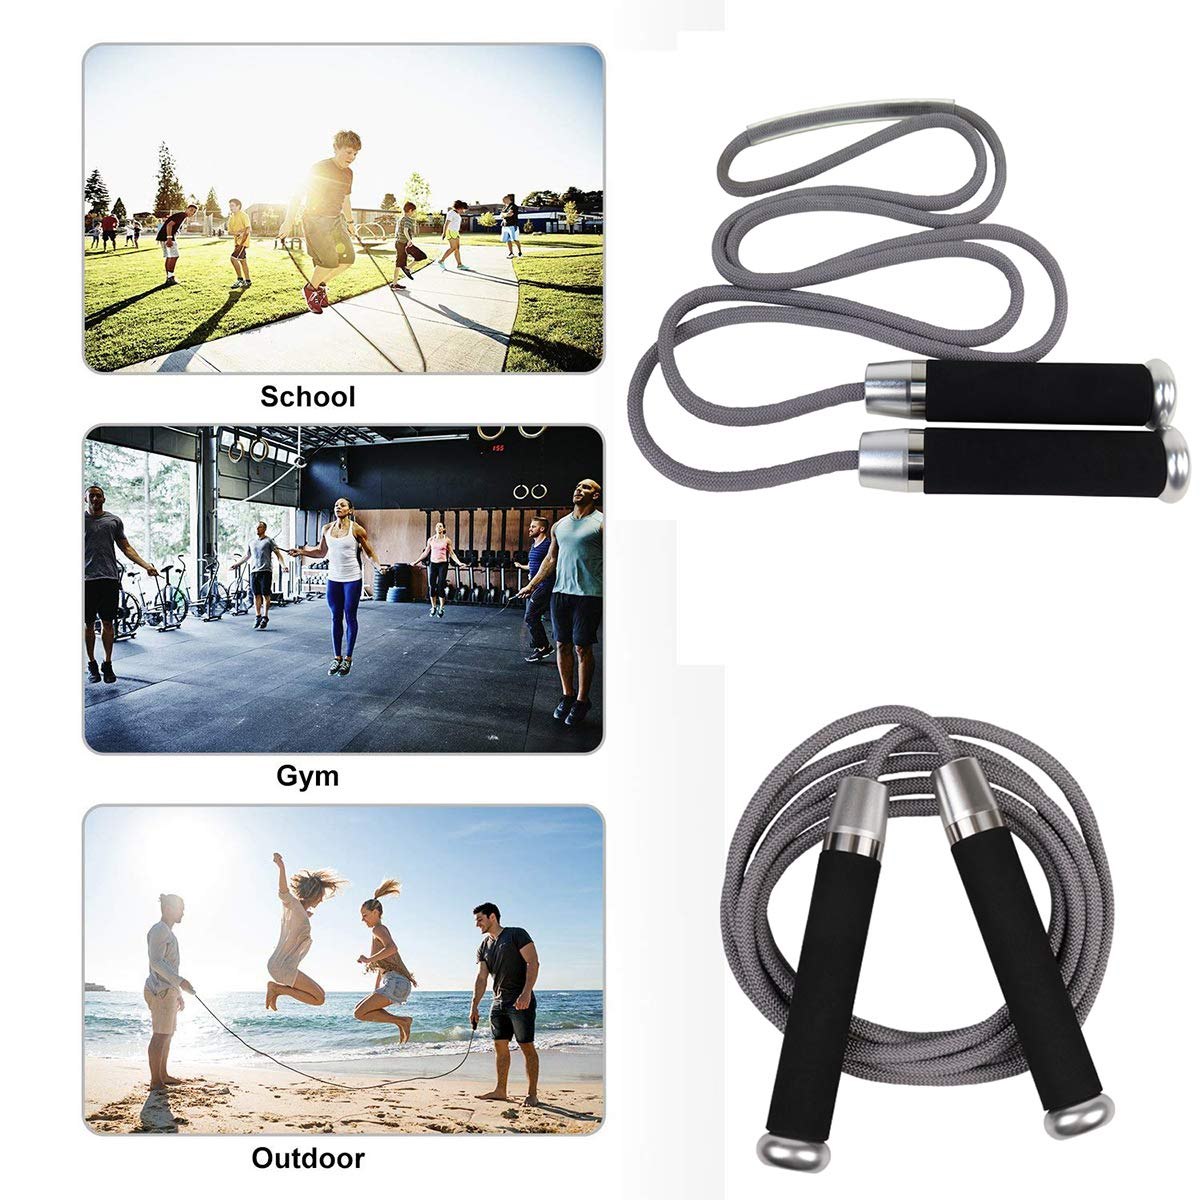 NORSENS Weighted Jump Ropes for Fitness Tangle-Free Skipping Rope with Ball Bearing Memory Foam Handles for Women Men Kids Exercise-2 Pack